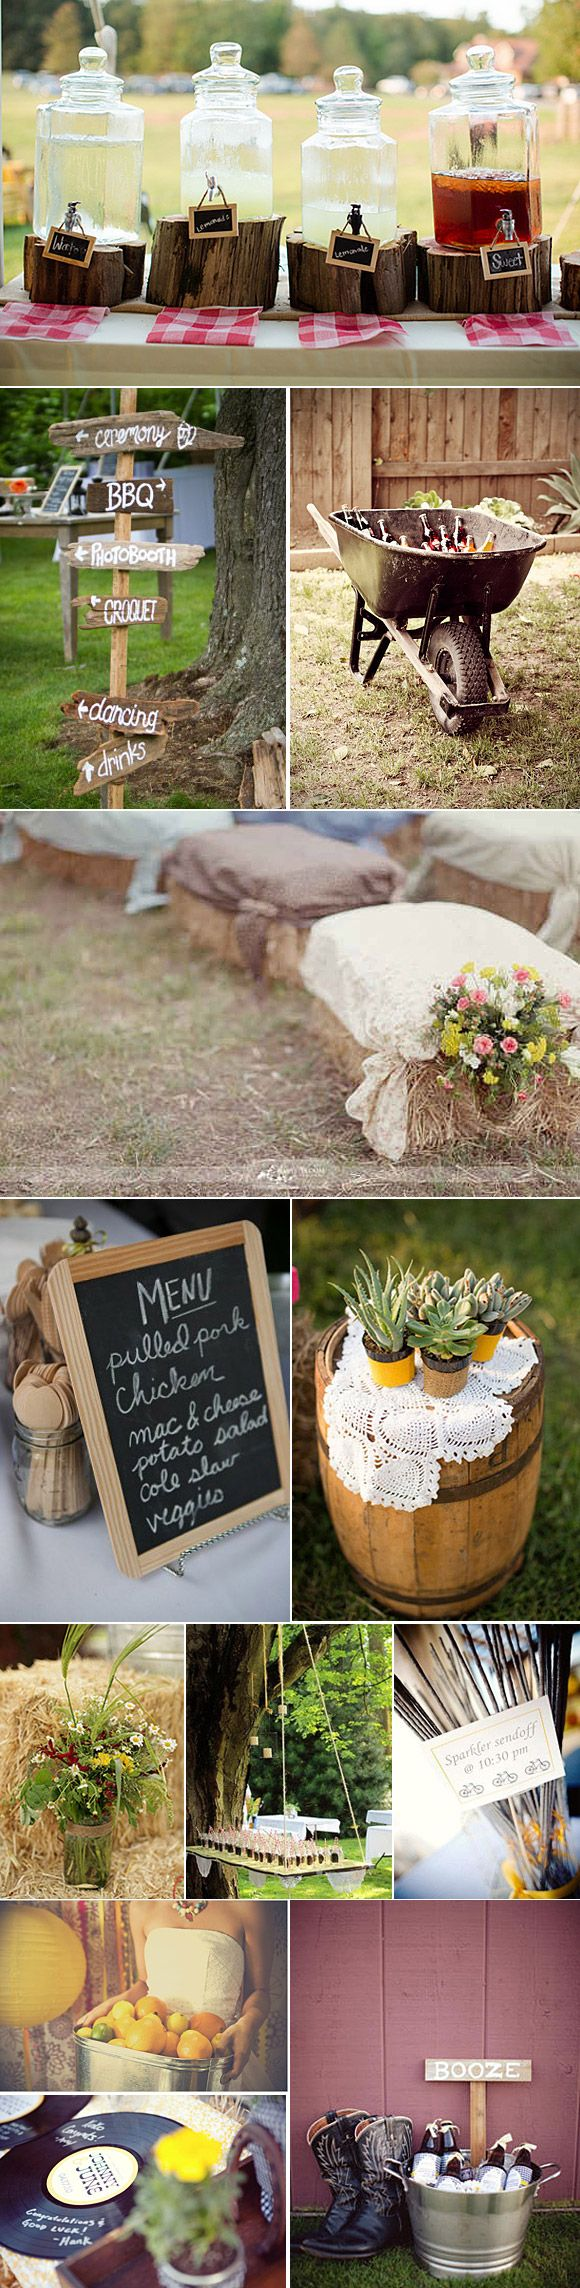 Just a few ideas that go with the Country/Picnic theme                                                                                                                                                     More